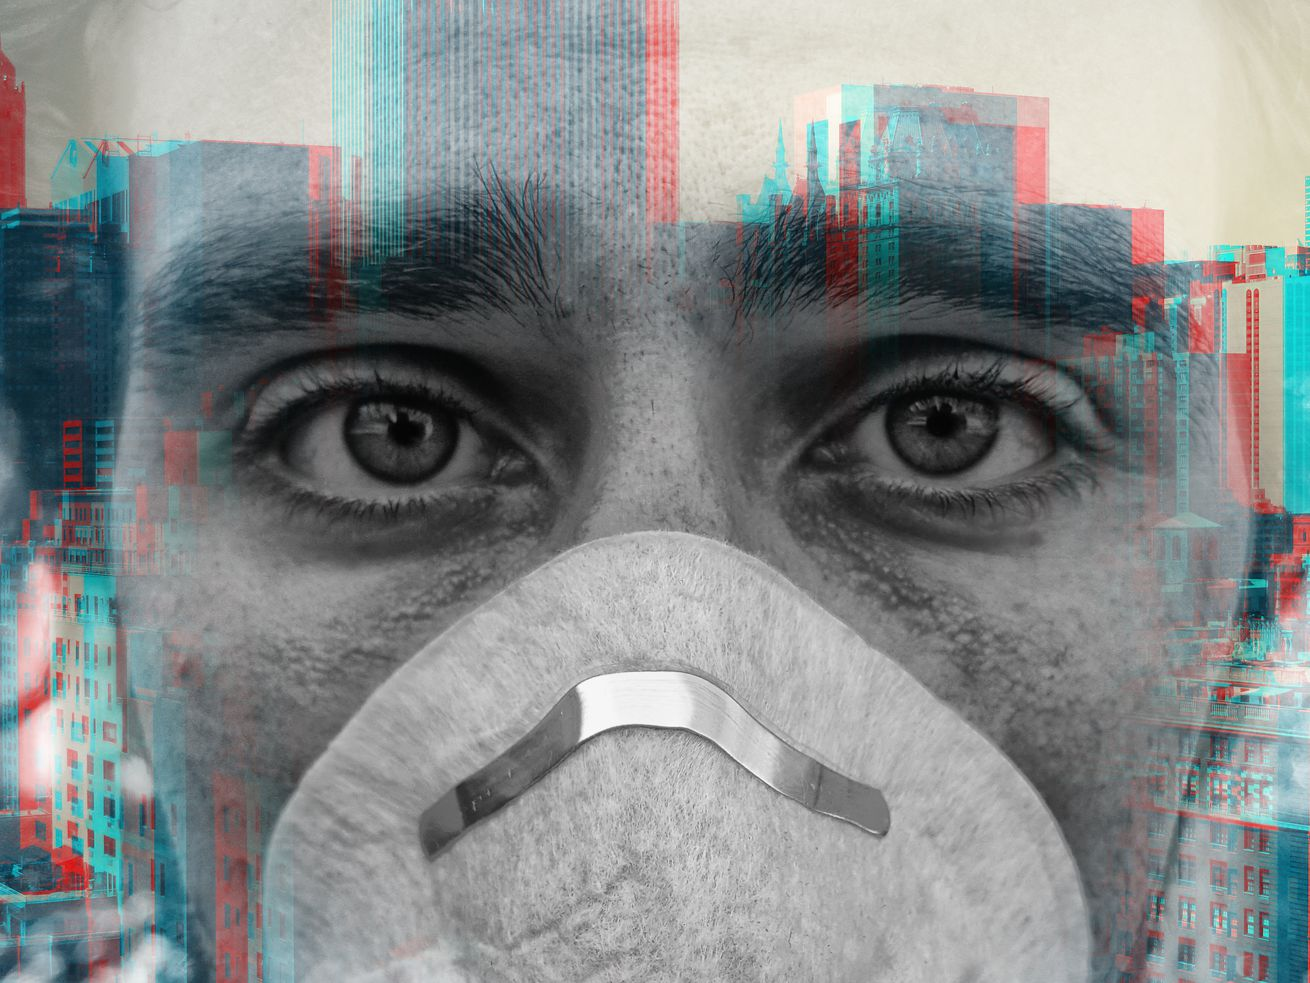 A person wears a mask and looks anxious in this illustrated photo.